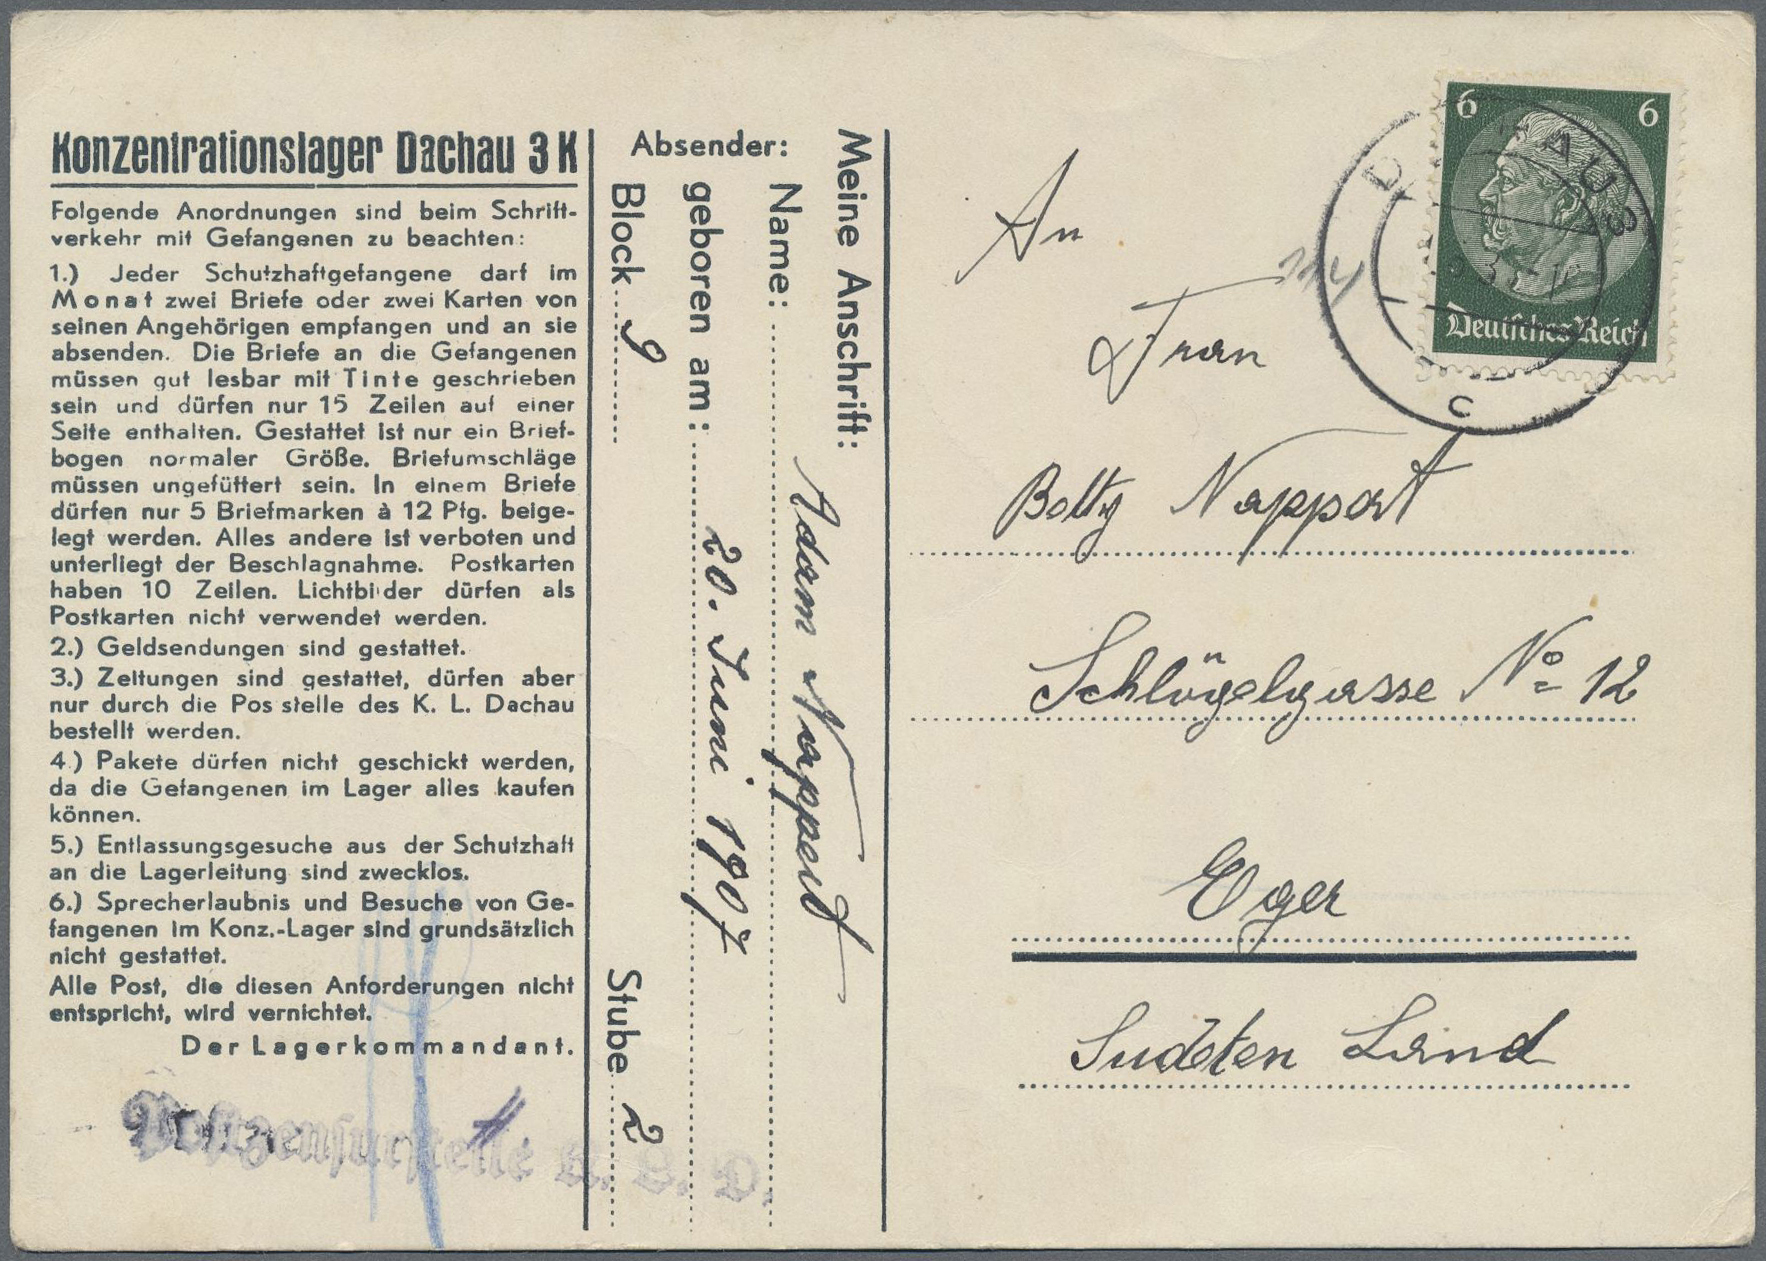 Lot 23976 - kz-post  -  Auktionshaus Christoph Gärtner GmbH & Co. KG Sale #44 Germany, Picture Post cards